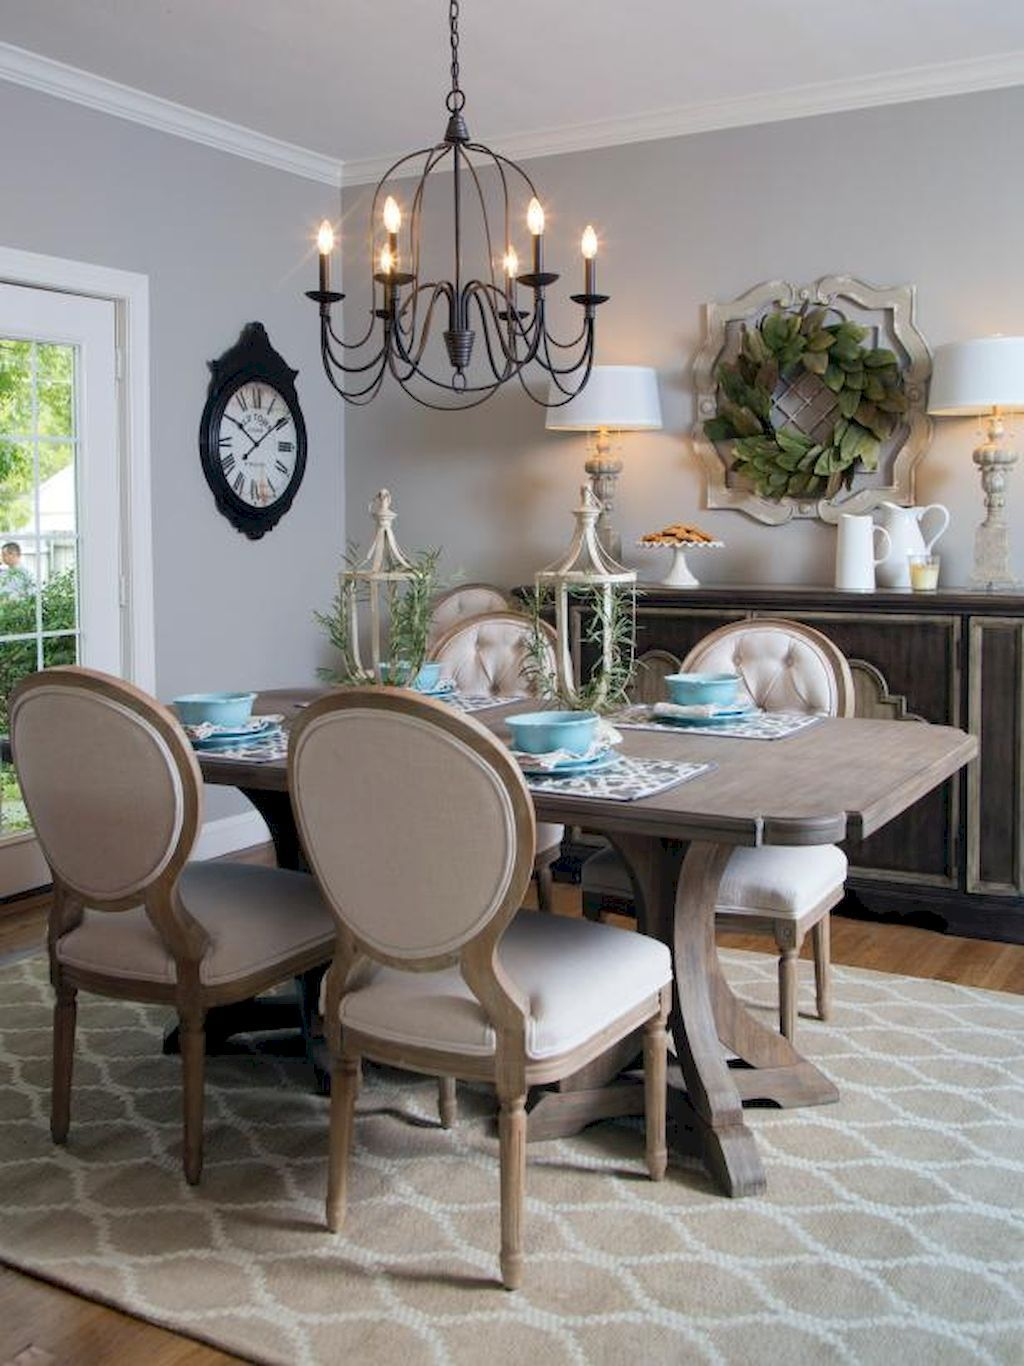 55 Lasting French Country Dining Room Furniture & Decor Ideas Brilliant French Country Dining Room Decorating Ideas Design Inspiration